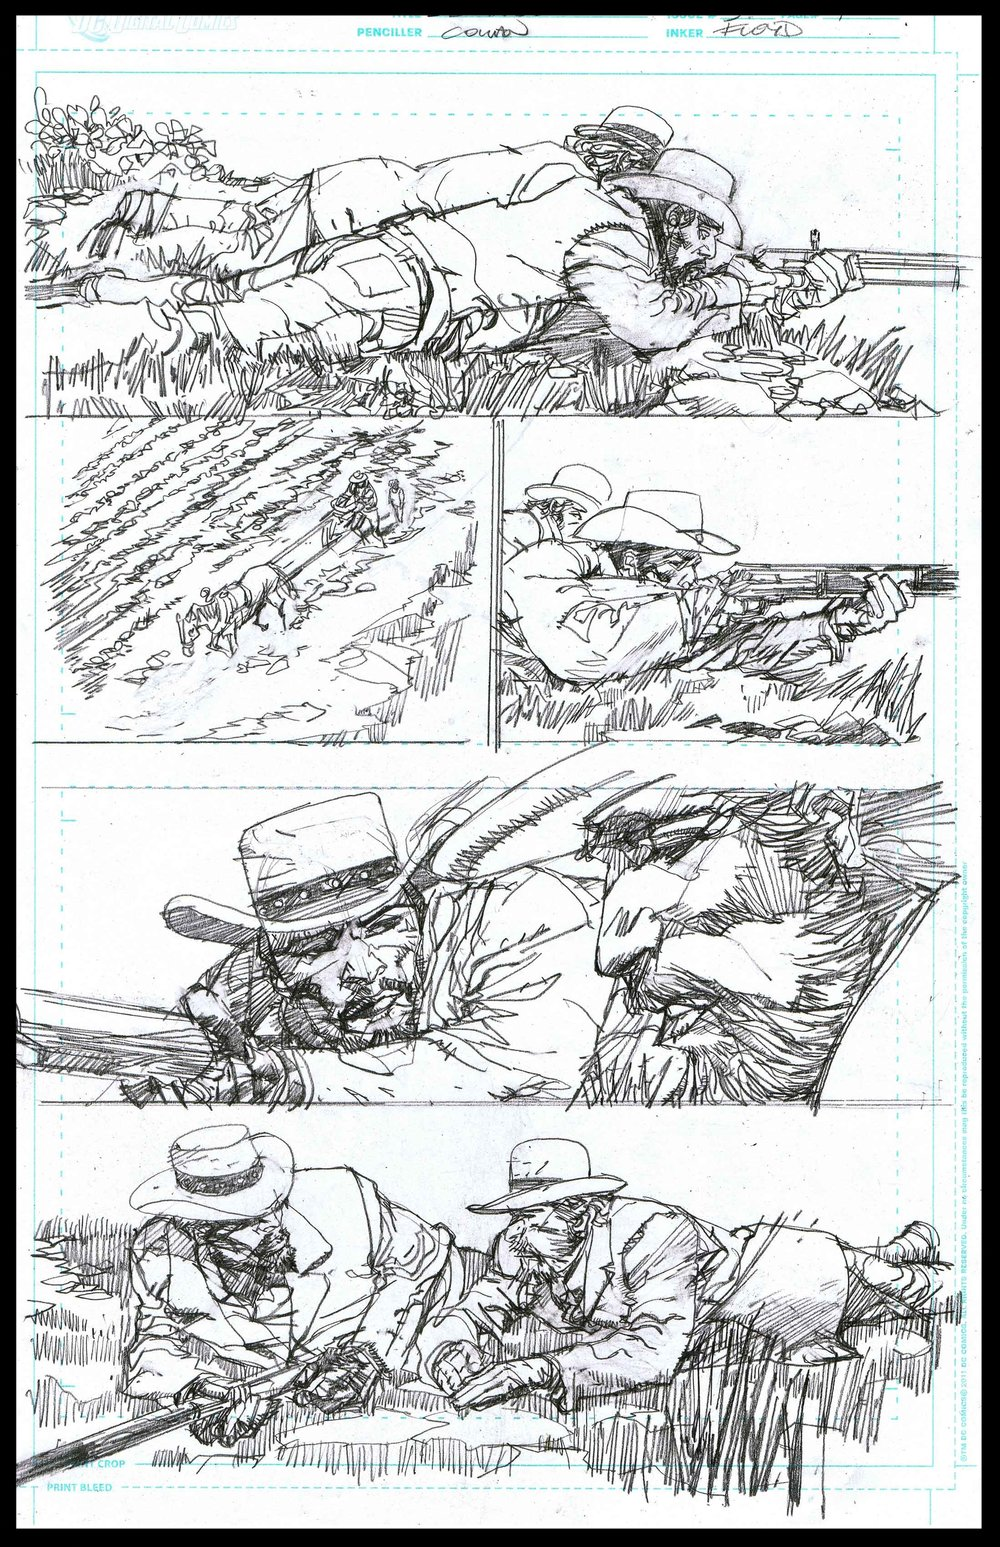 Django Unchained #3 - Page 4 - Pencils